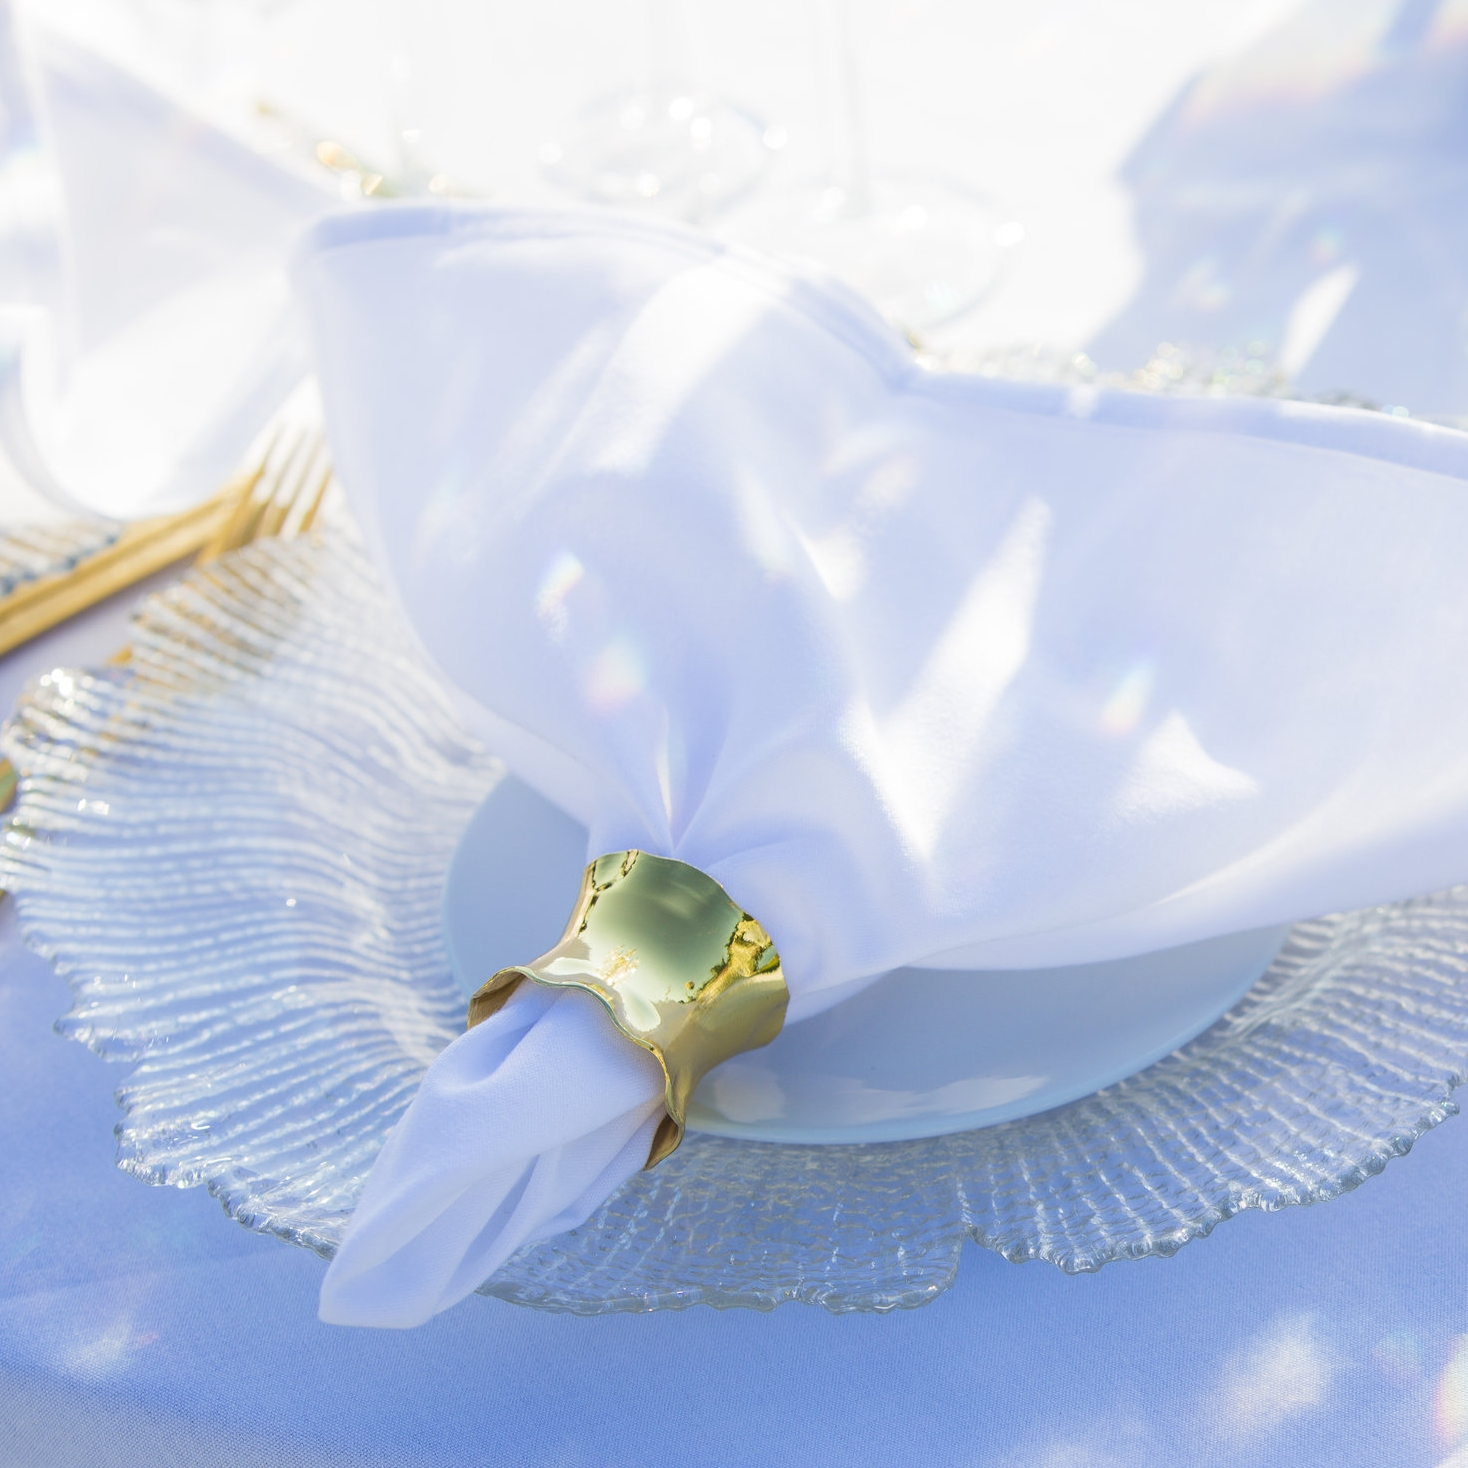 crystal_charger_plate_gold_napkin_ring_cutlery.jpg